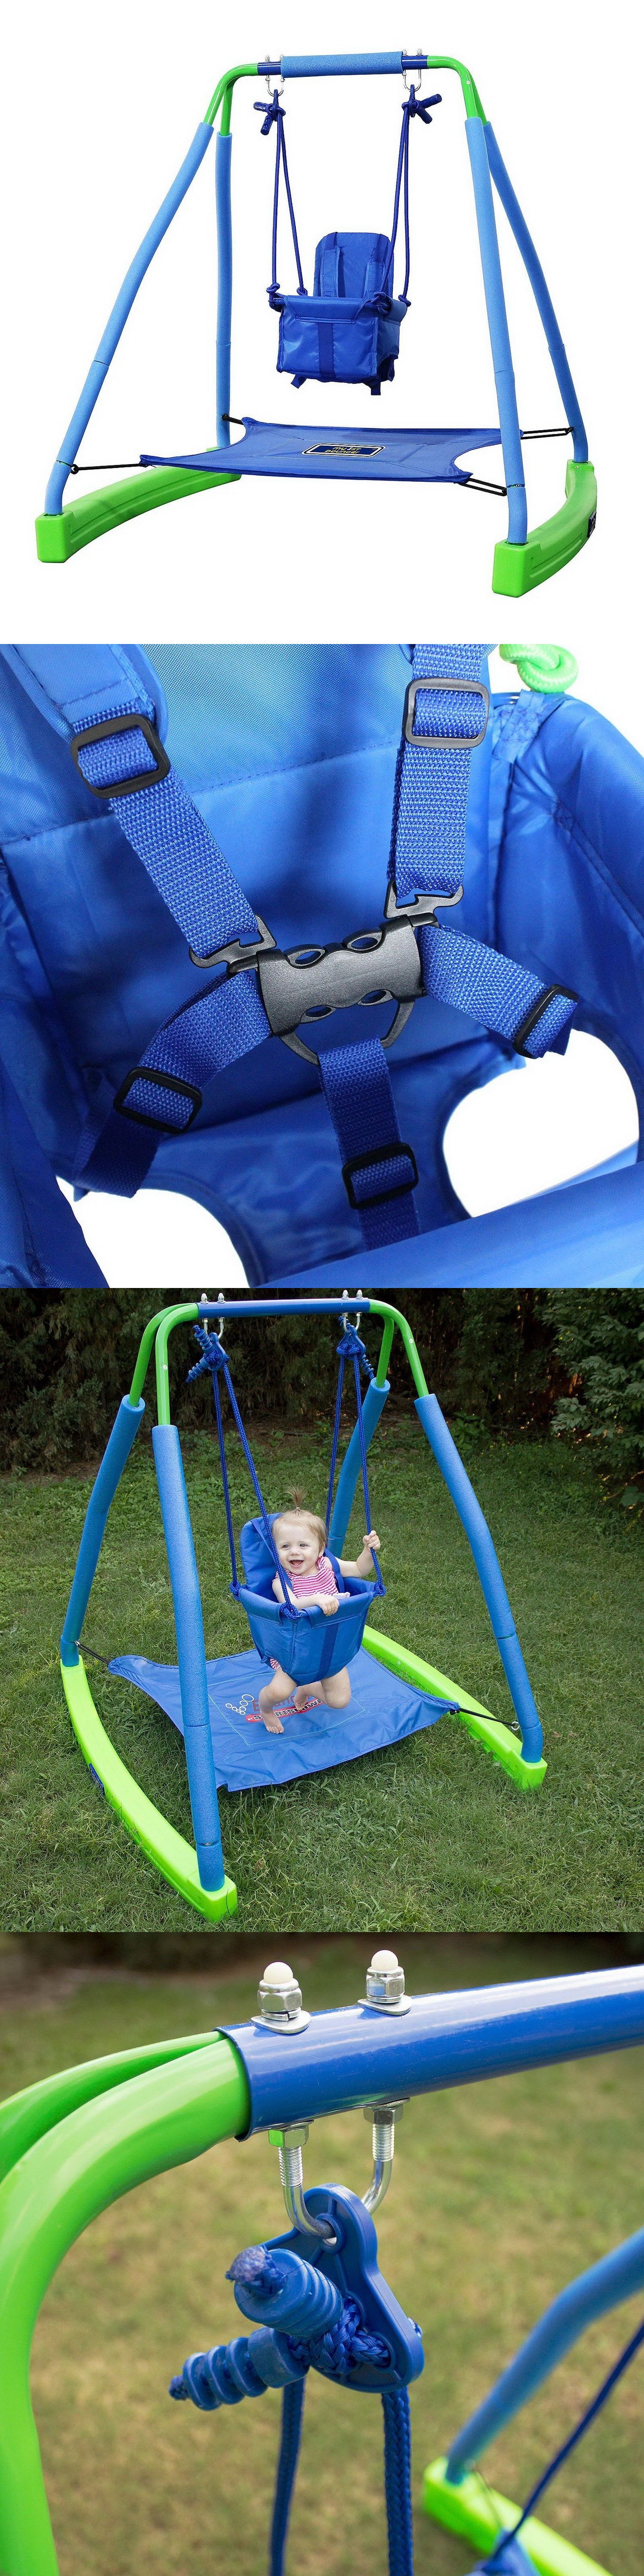 Baby Swings 2990: My First Toddler Swing With Bouncer Safety Harness Age  9-36 Months -> BUY IT NOW ONLY: $125.99 on eBay!